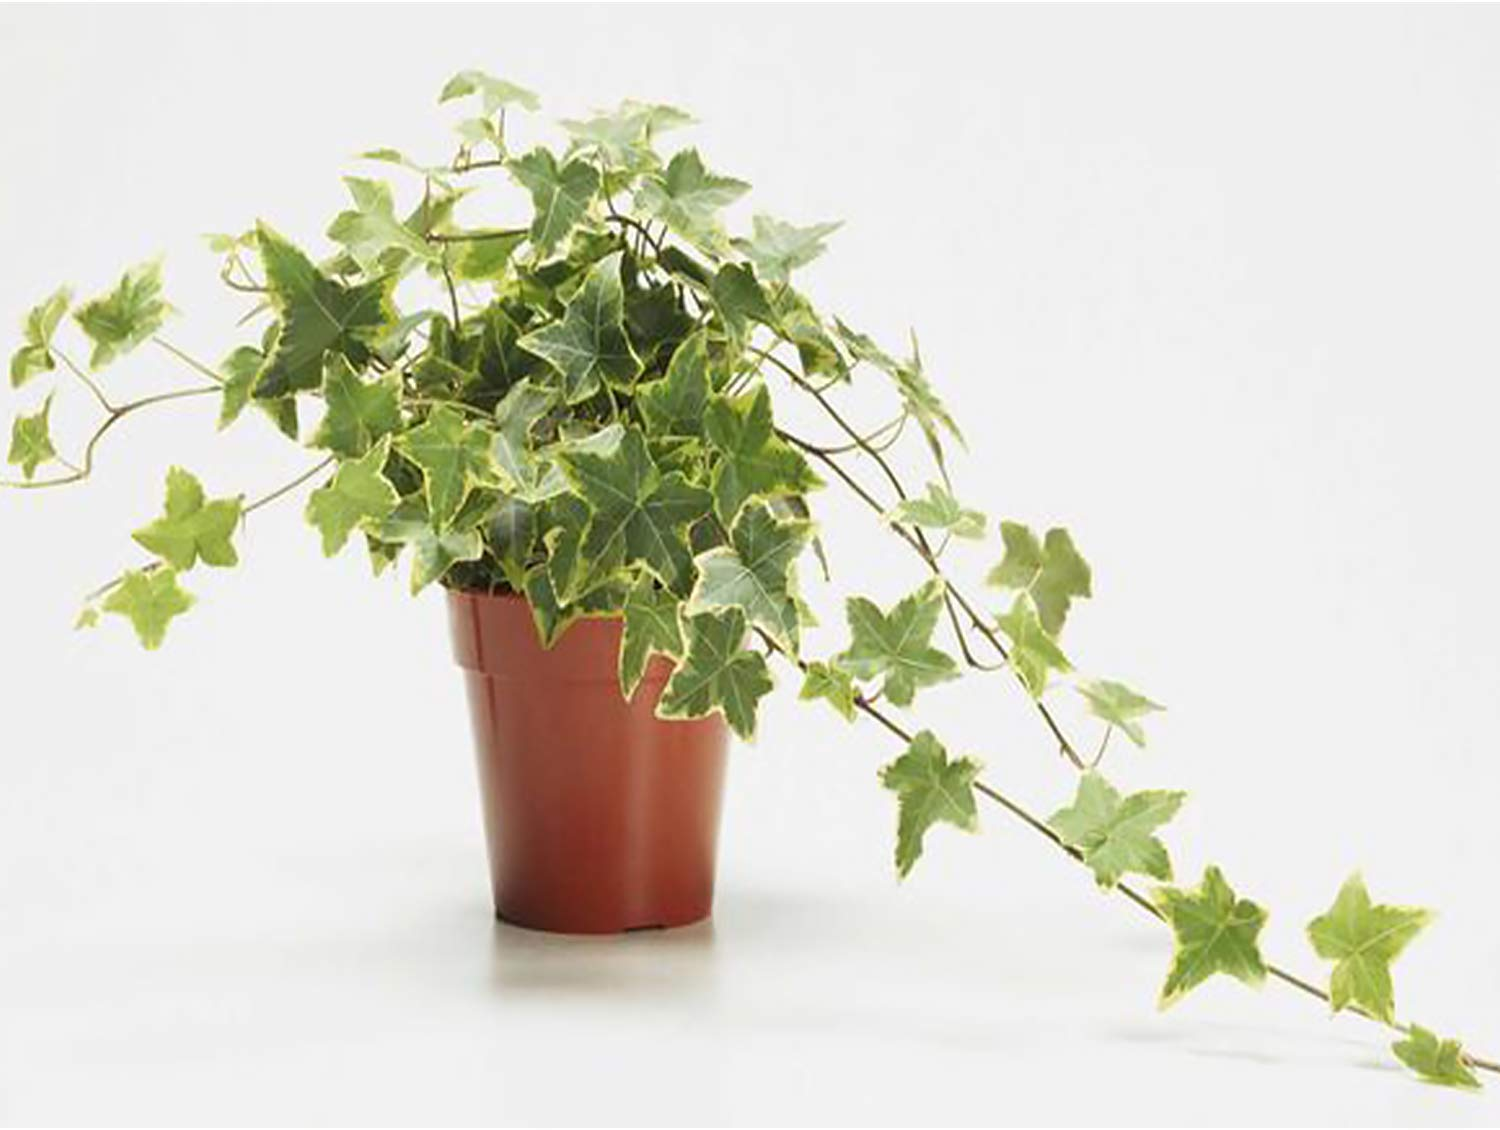 AMERICAN PLANT EXCHANGE Variegated English Ivy Trailing Vine Live Plant, 6'' Pot, Indoor/Outdoor Air Purifier by AMERICAN PLANT EXCHANGE